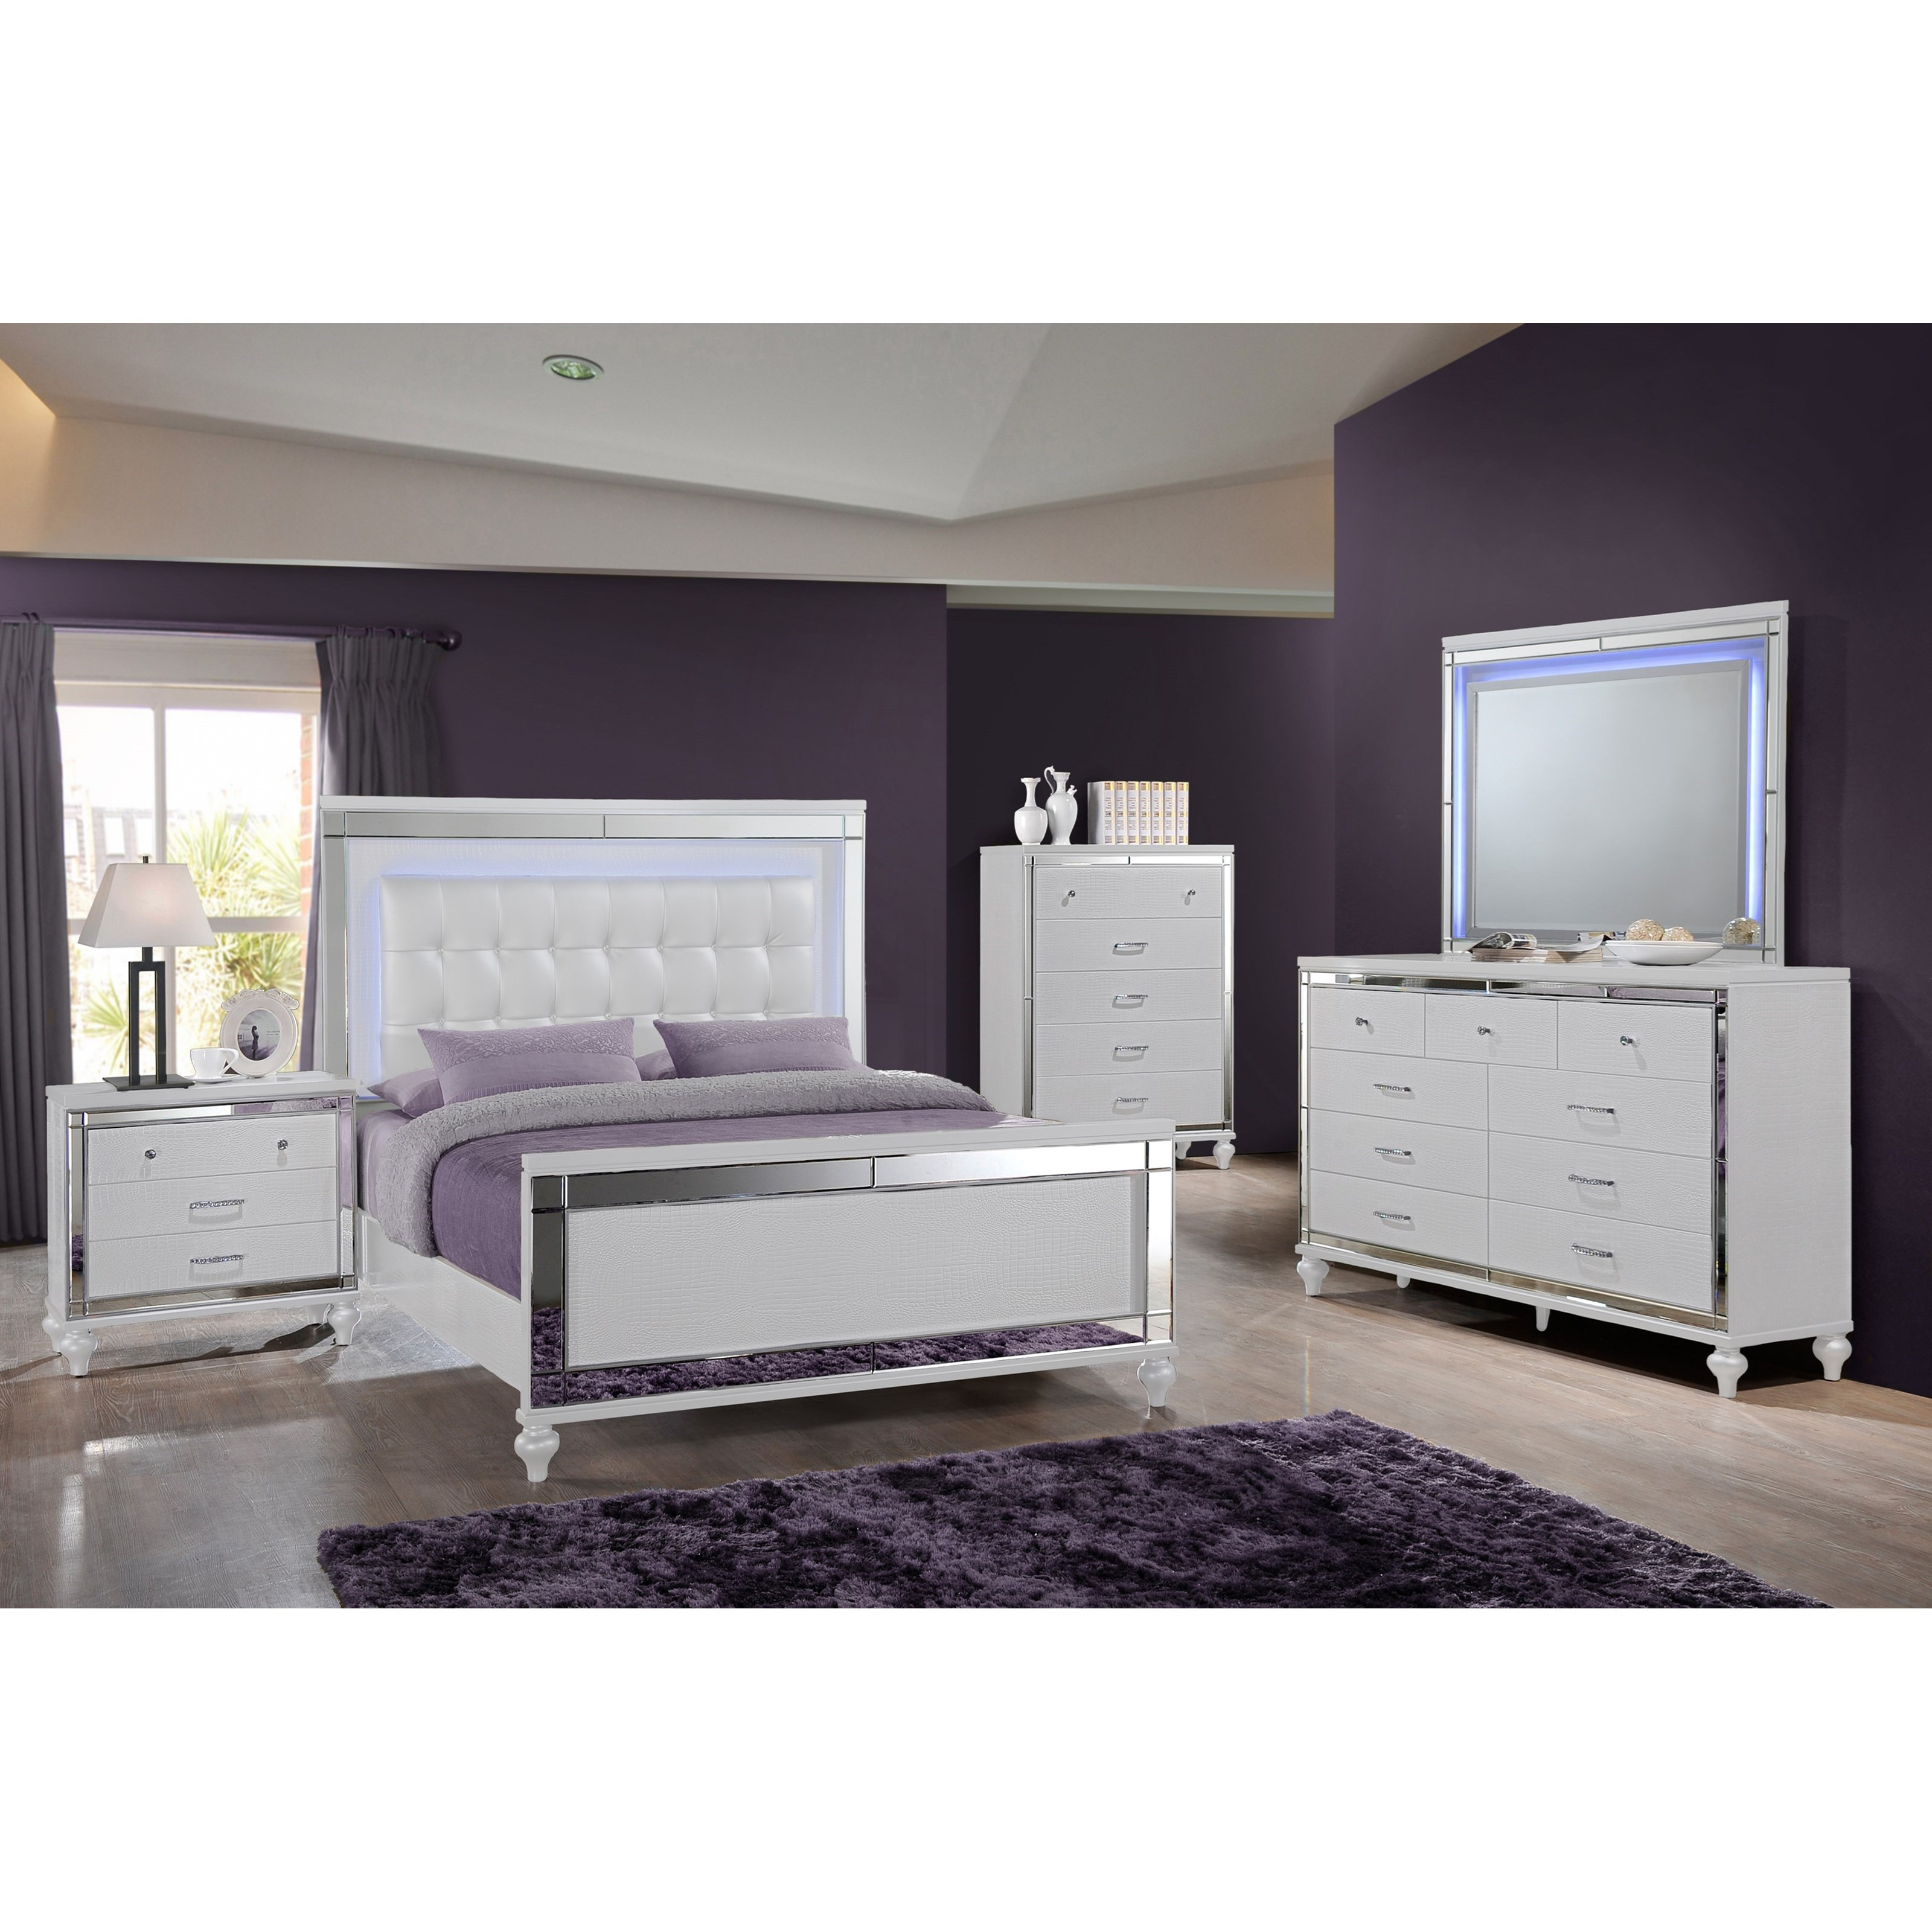 Valentino Queen Bedroom Group by New Classic at H.L. Stephens